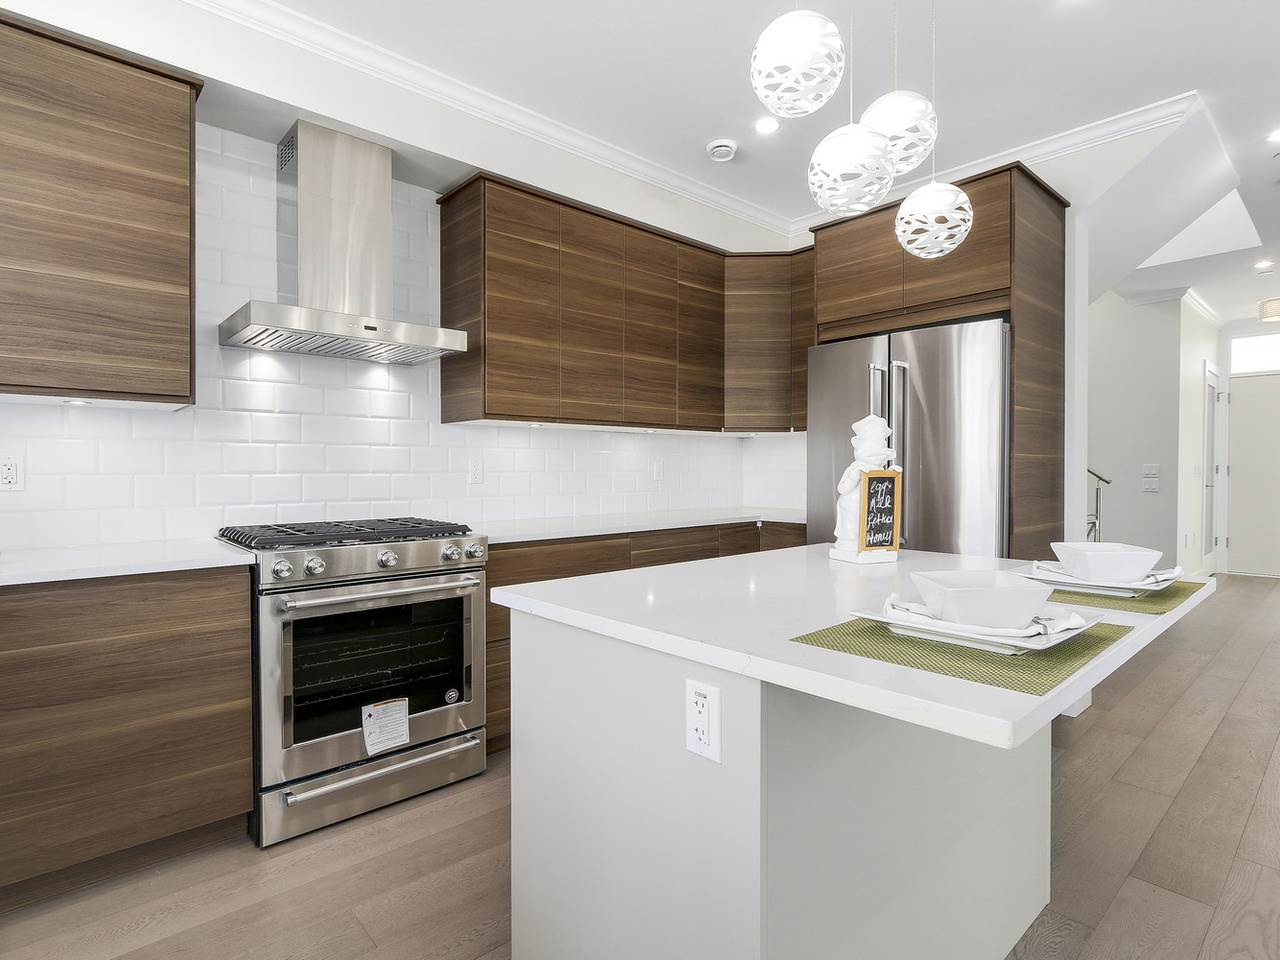 Photo 10: 3539 ETON Street in Vancouver: Hastings East House for sale (Vancouver East)  : MLS(r) # R2159493